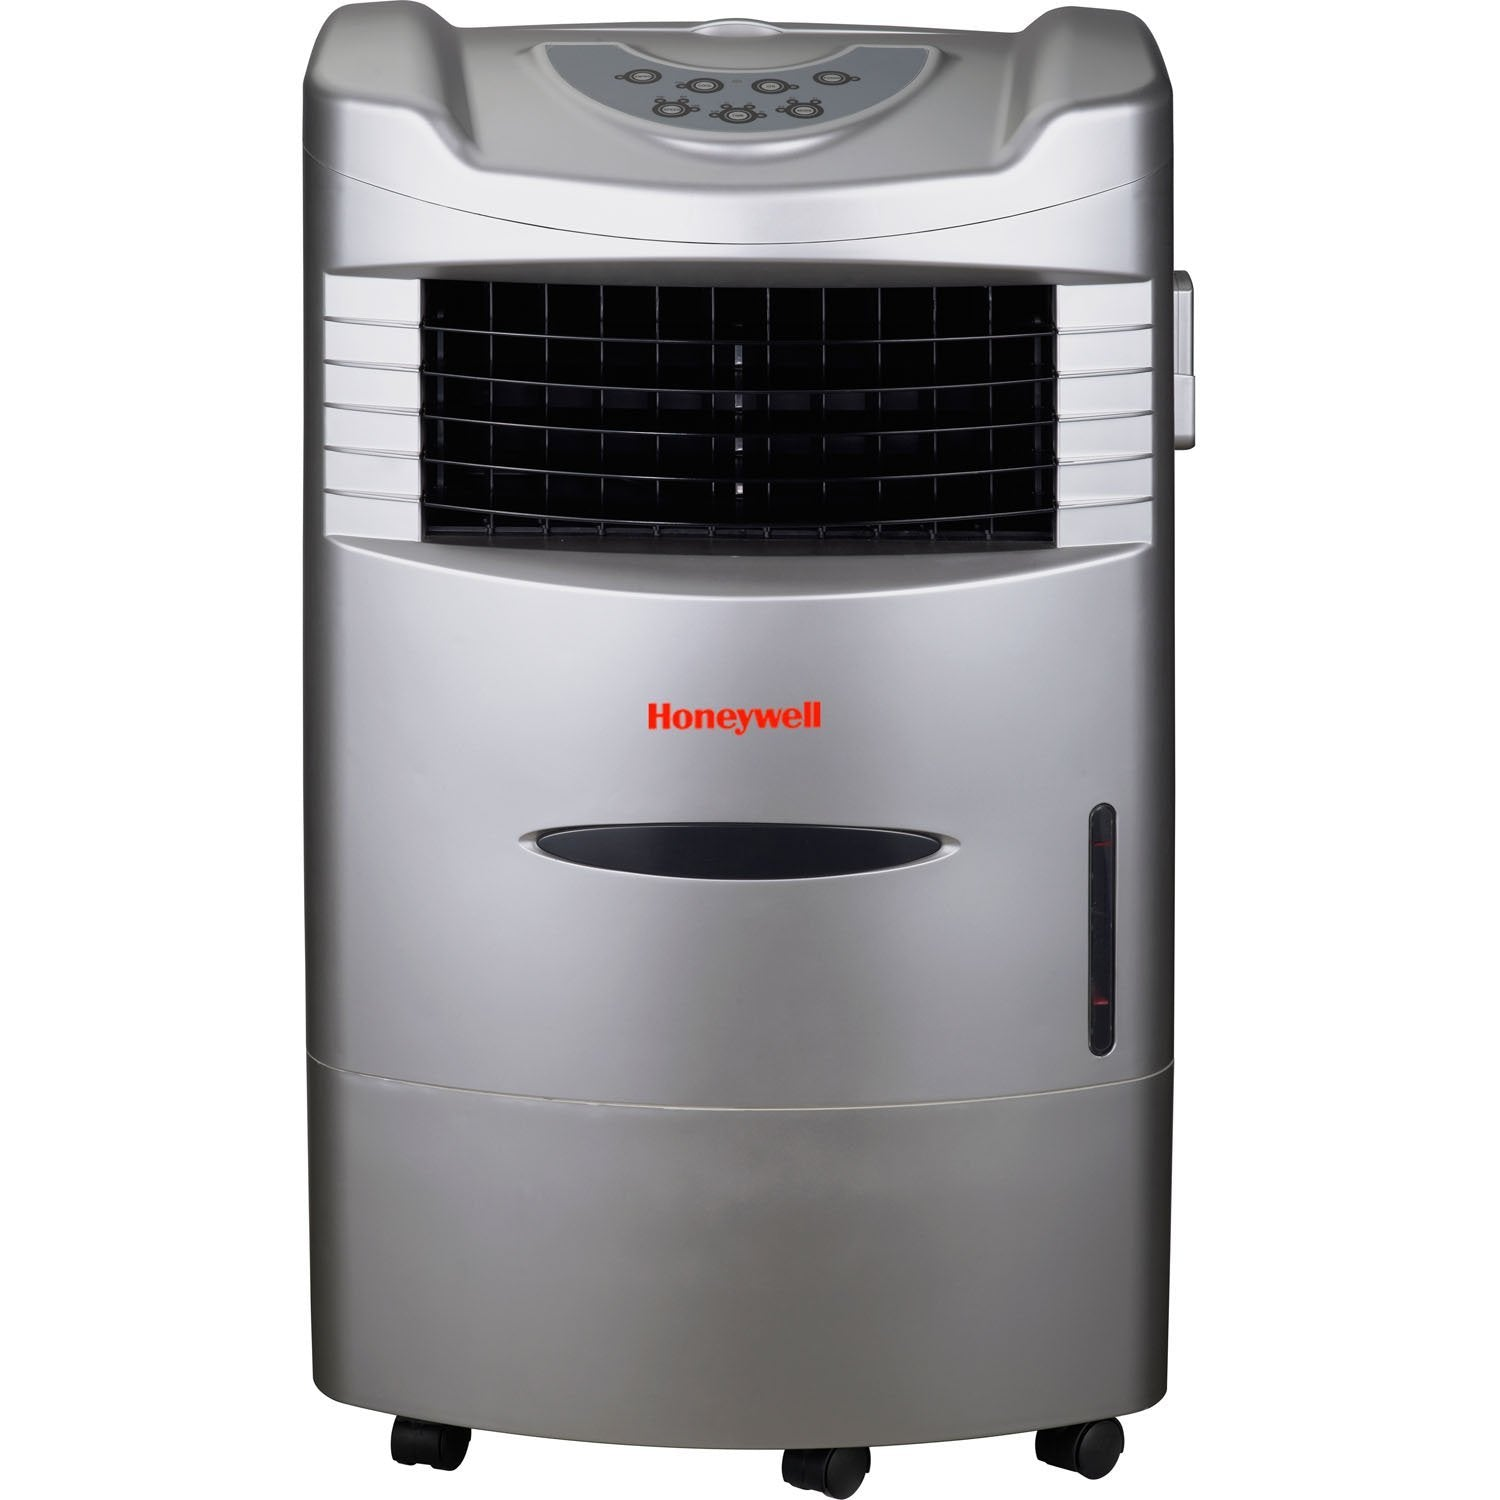 Honeywell CL201AE 42